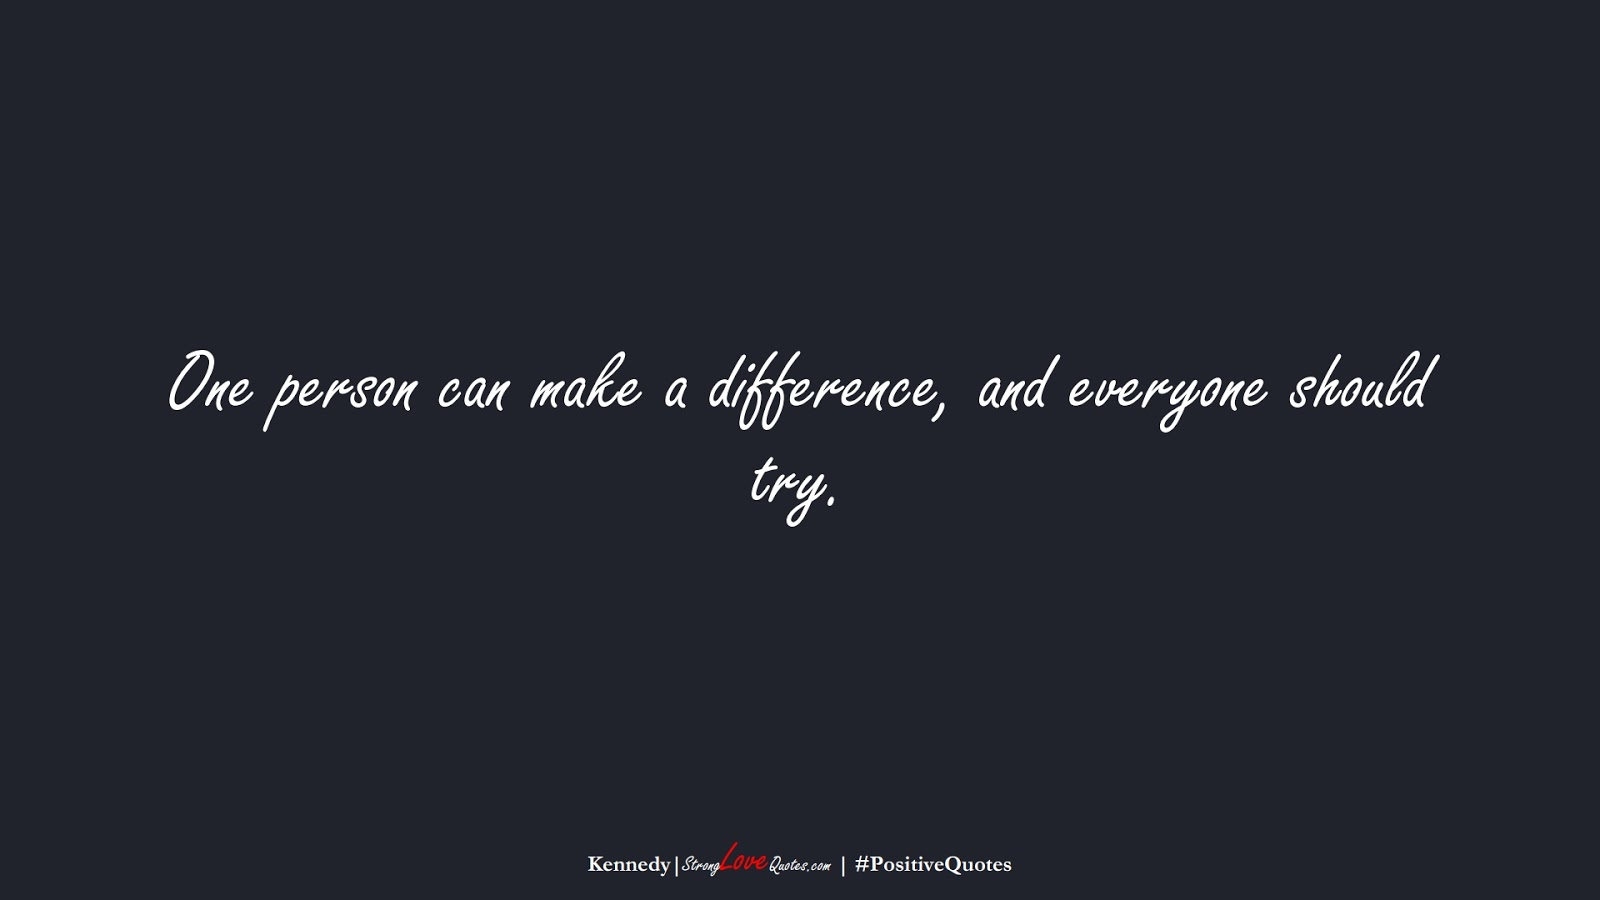 One person can make a difference, and everyone should try. (Kennedy);  #PositiveQuotes